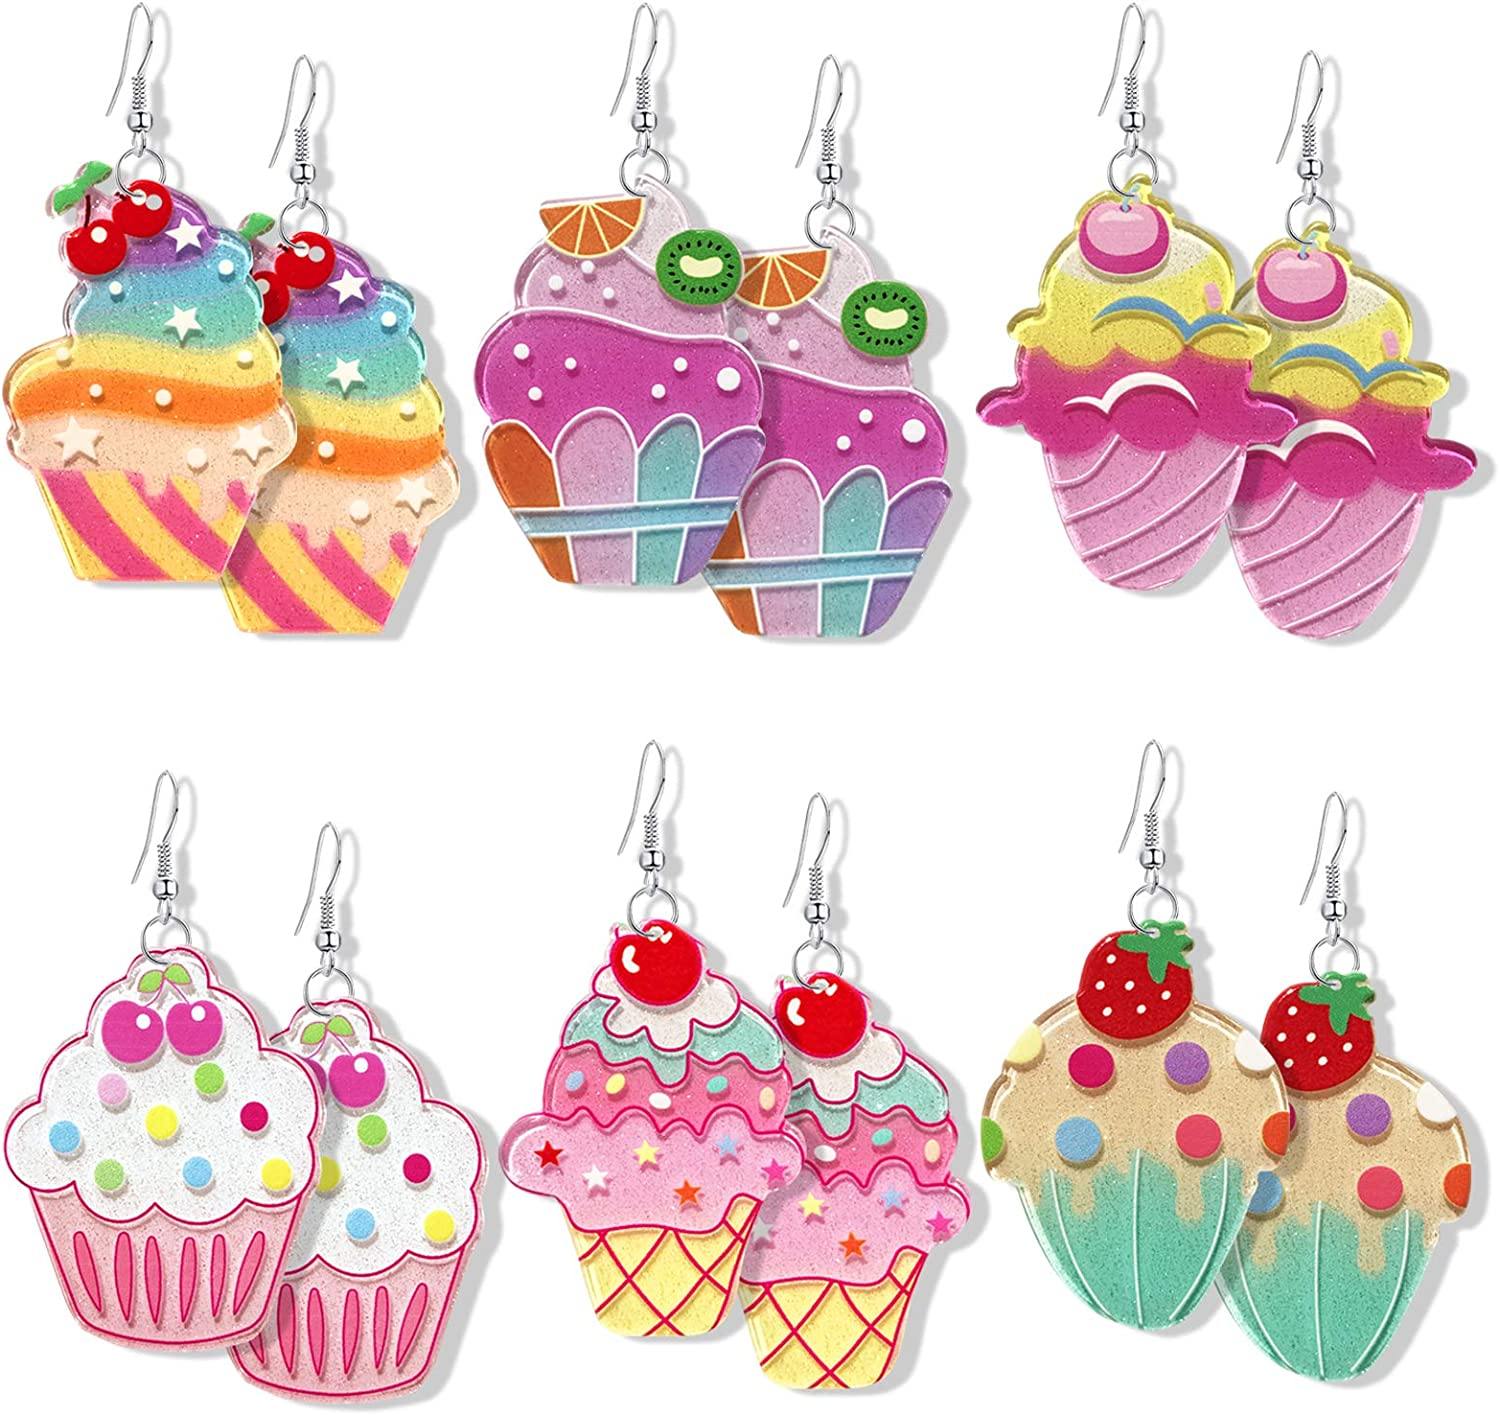 DAMLENG 6 Pairs Creative Handmade Simulation Food Colorful Rainbow Ice Cream Dangle Drop Earrings Unique Kawaii Candy Fruits Earrings Set for Women Girls Jewelry